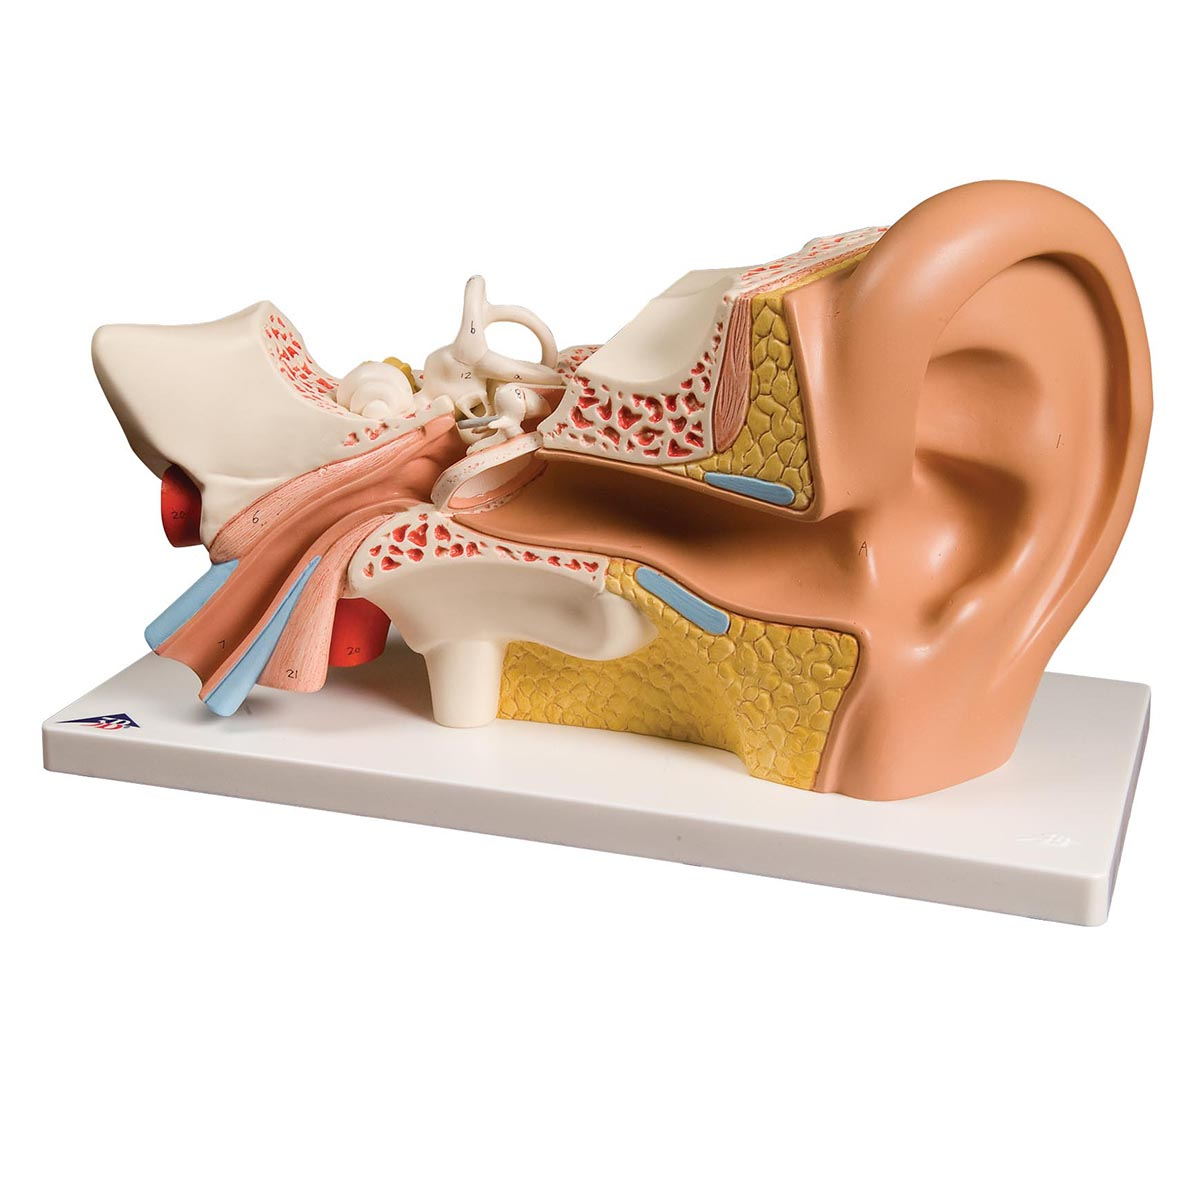 EAR 3 TIMES LIFE-SIZE, 6 PART (1000251)